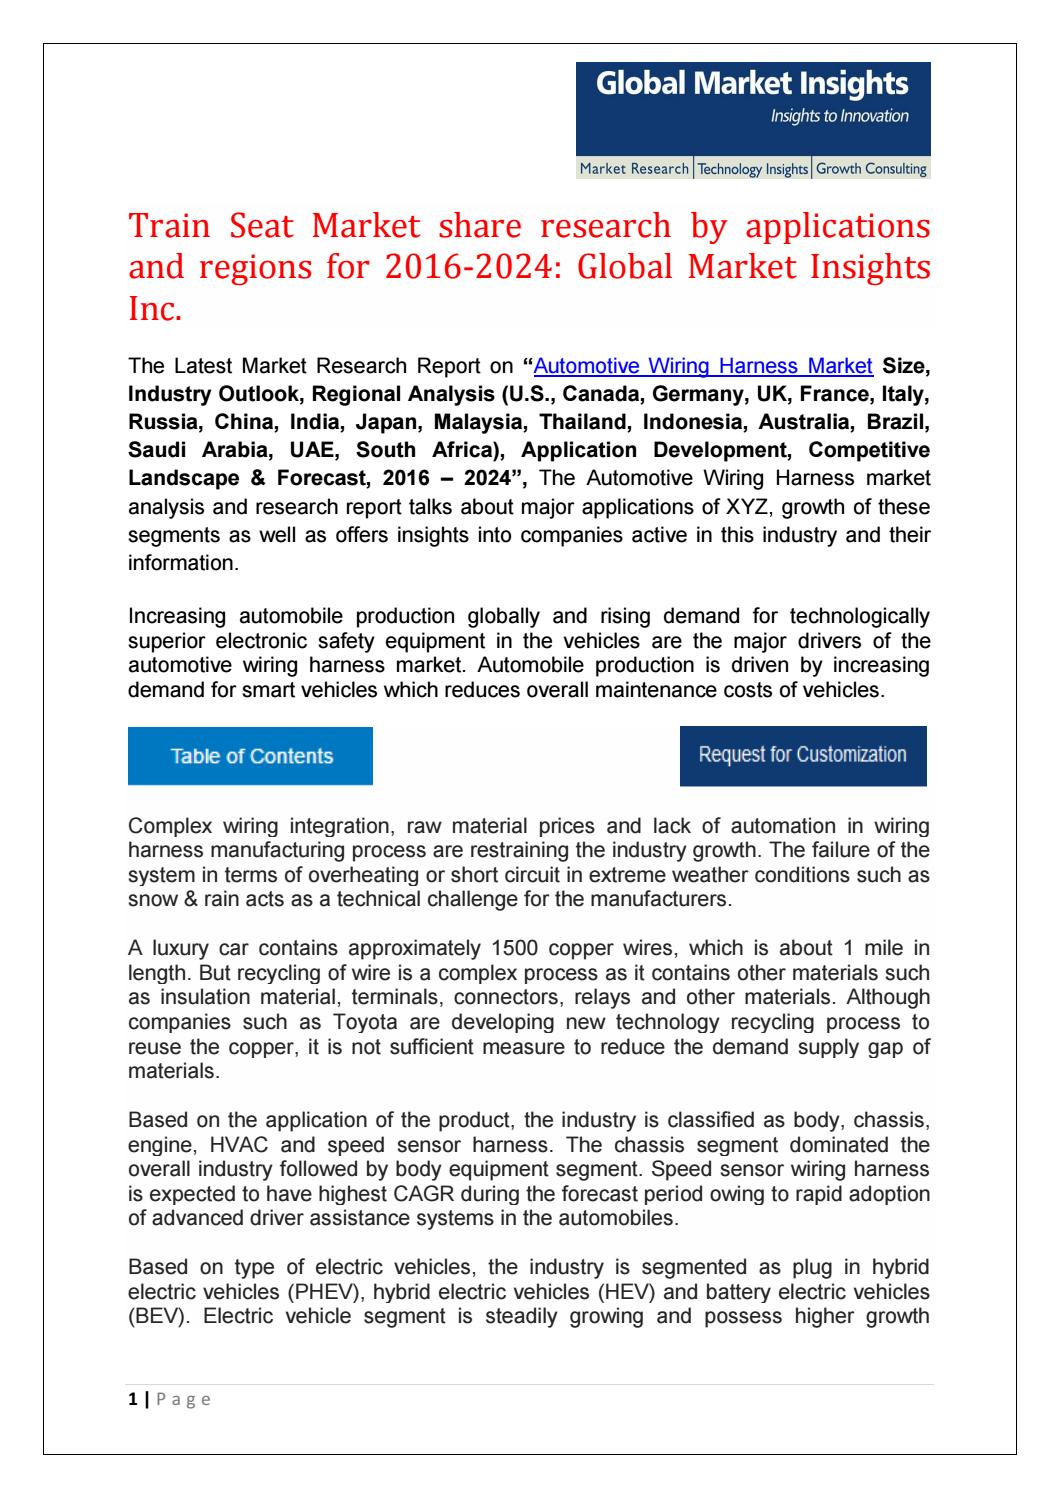 Automotive Wiring Harness Market Share Research By Applications And Auto Mobile Regions For 2016 2024 Mayur Yeole Issuu